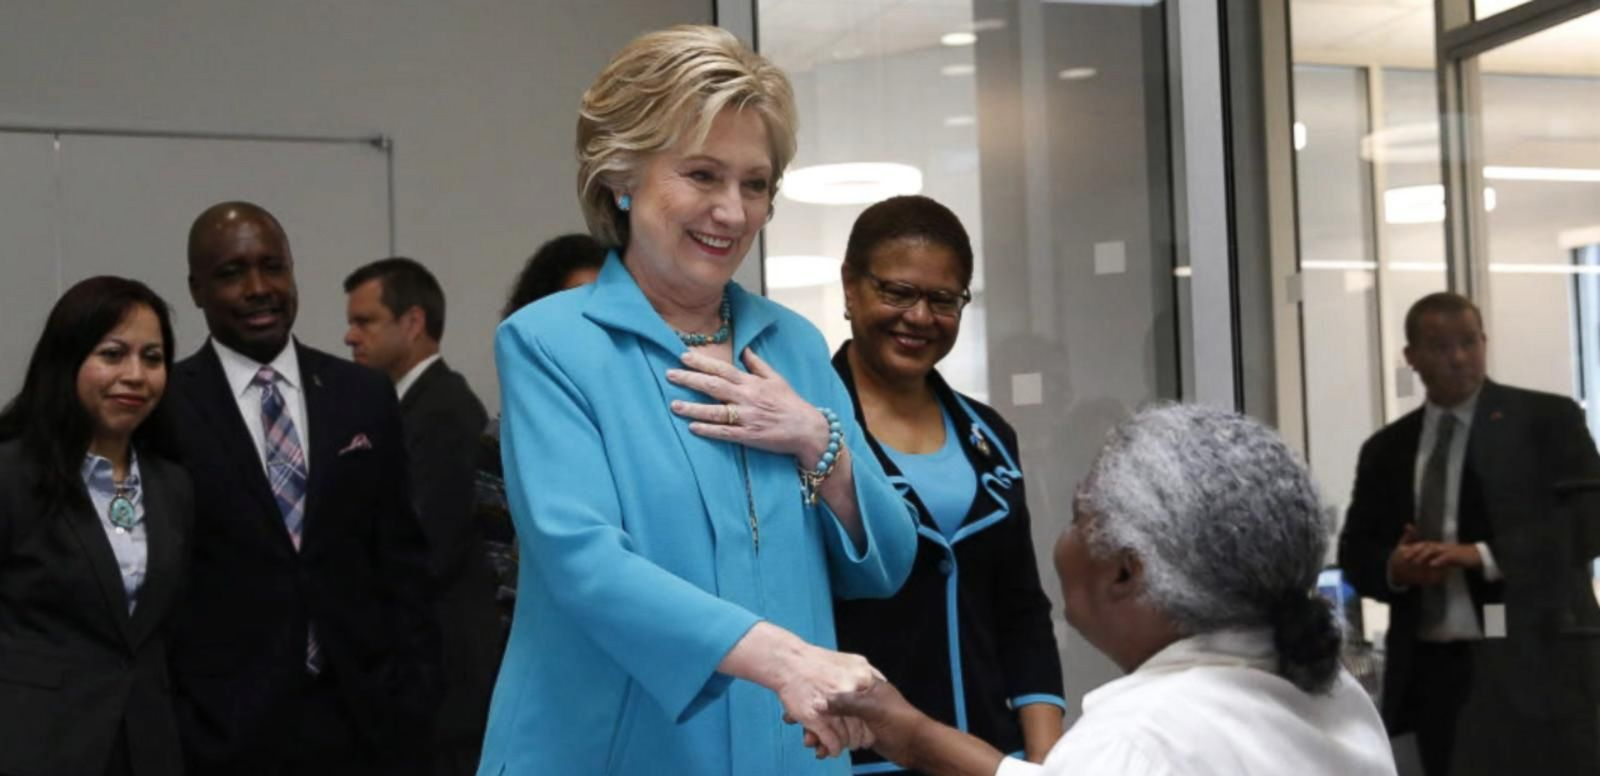 VIDEO: Clinton and Trump Exchange Increasingly Personal Blows as Race to White House Heats Up